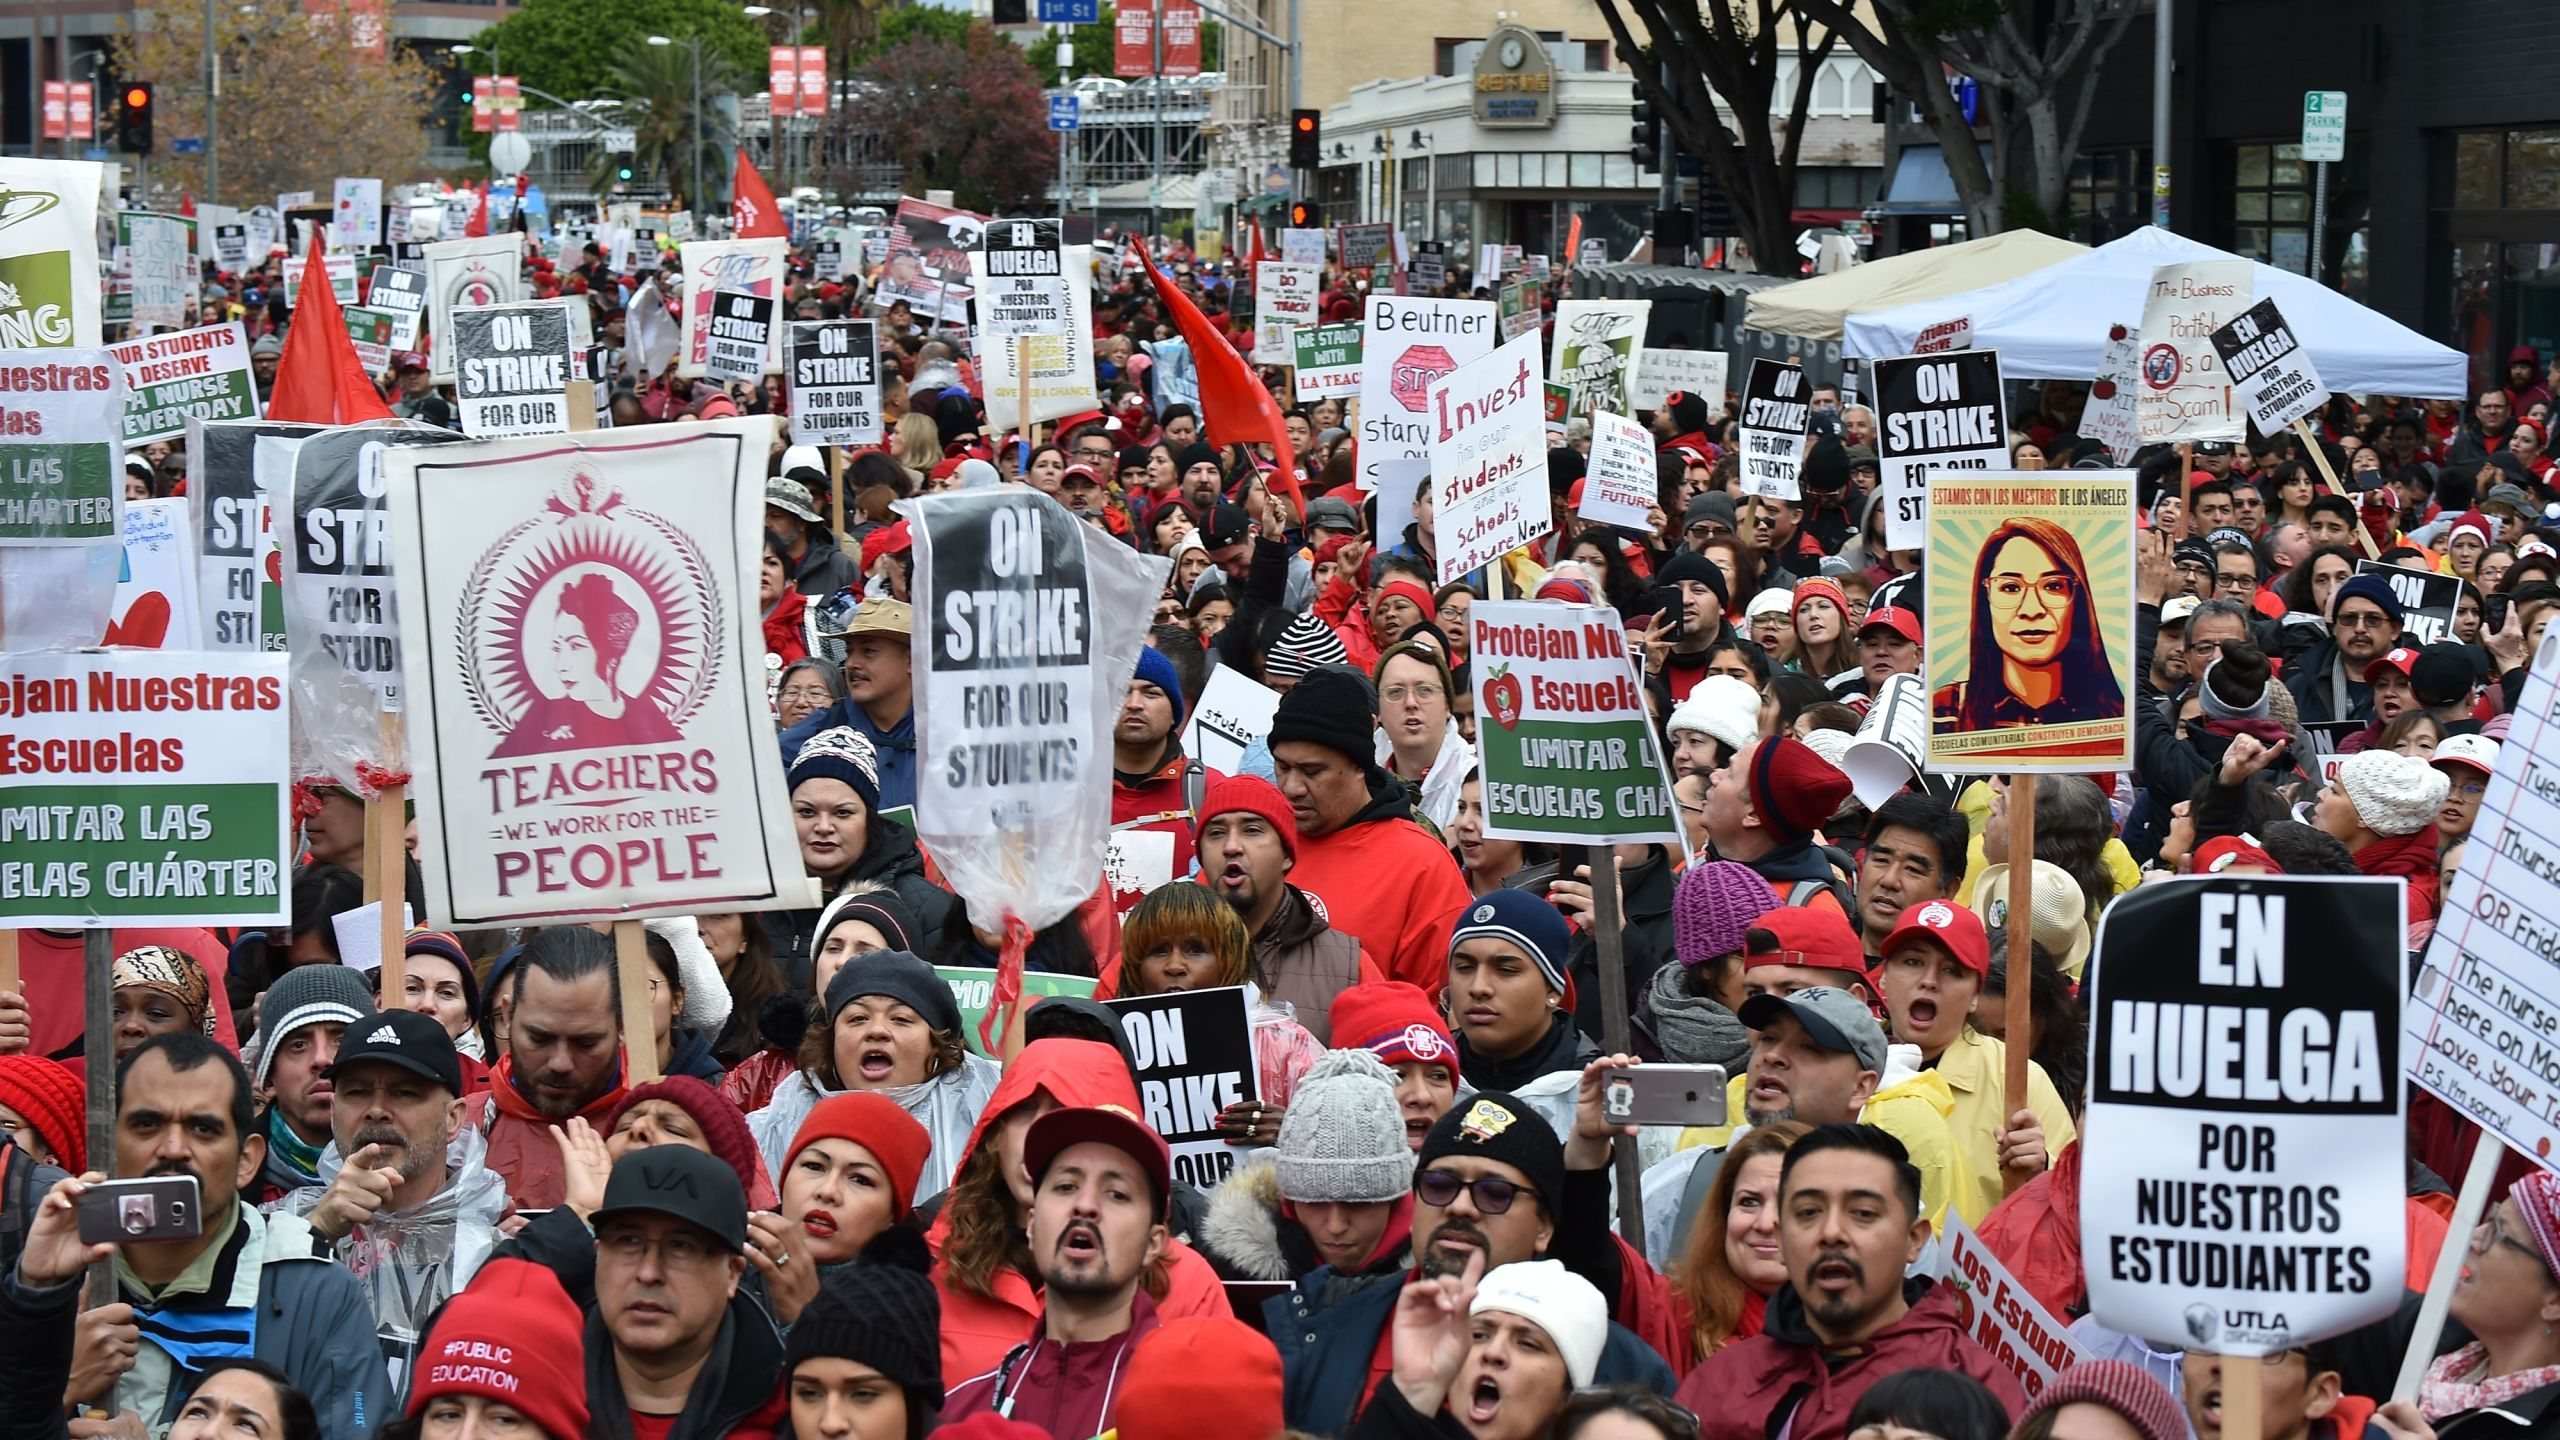 Striking teachers and their supporters rally in downtown Los Angeles, on the second day of the teachers strike, on Jan. 15, 2019. (Credit: Robyn Beck/AFP/Getty Images)